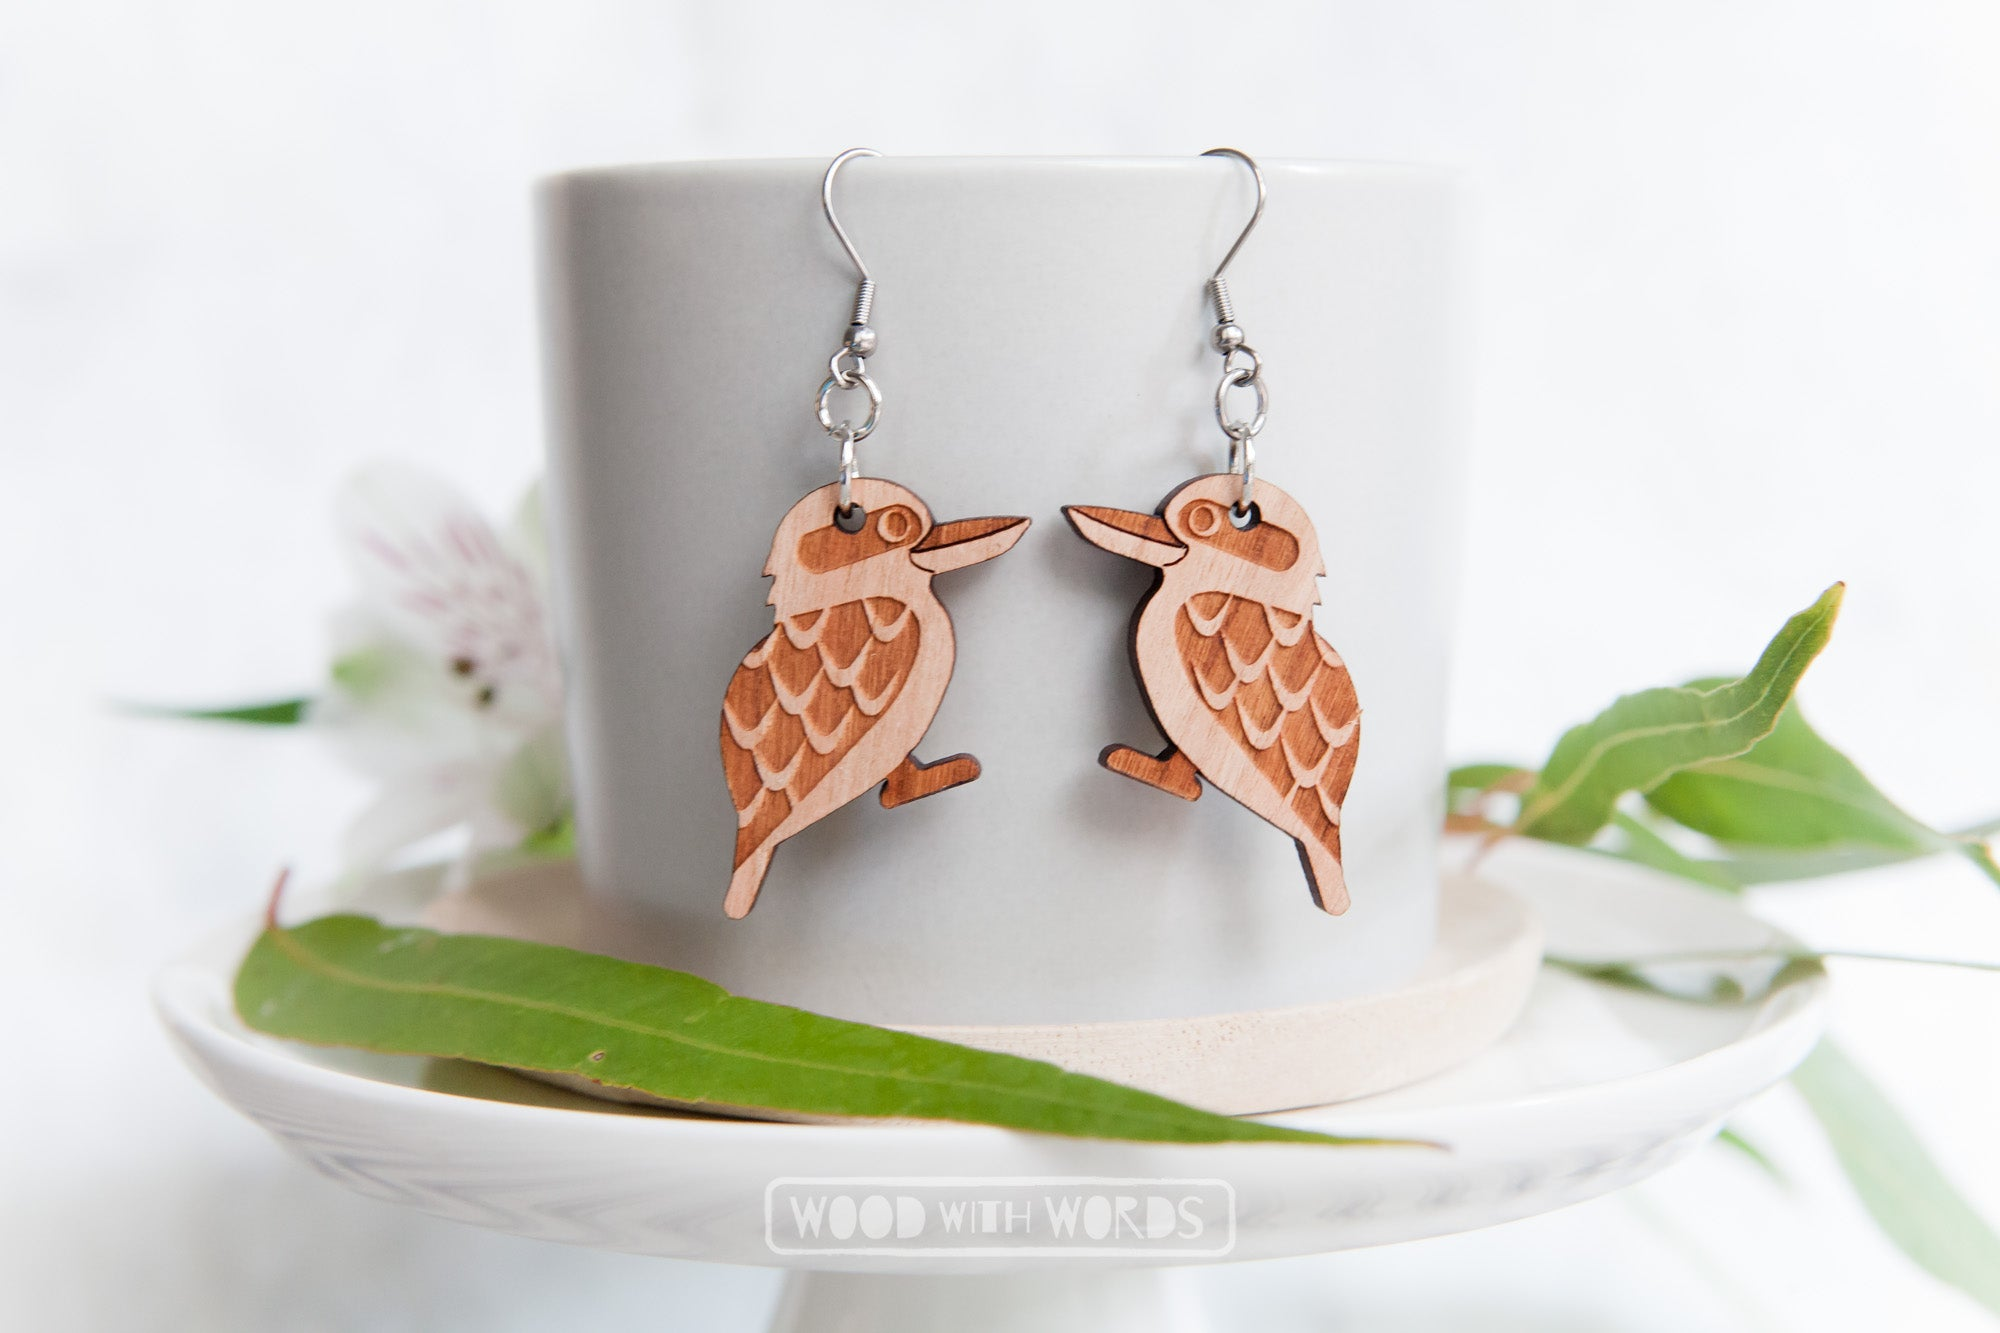 Kookaburra Earrings by Wood With Words